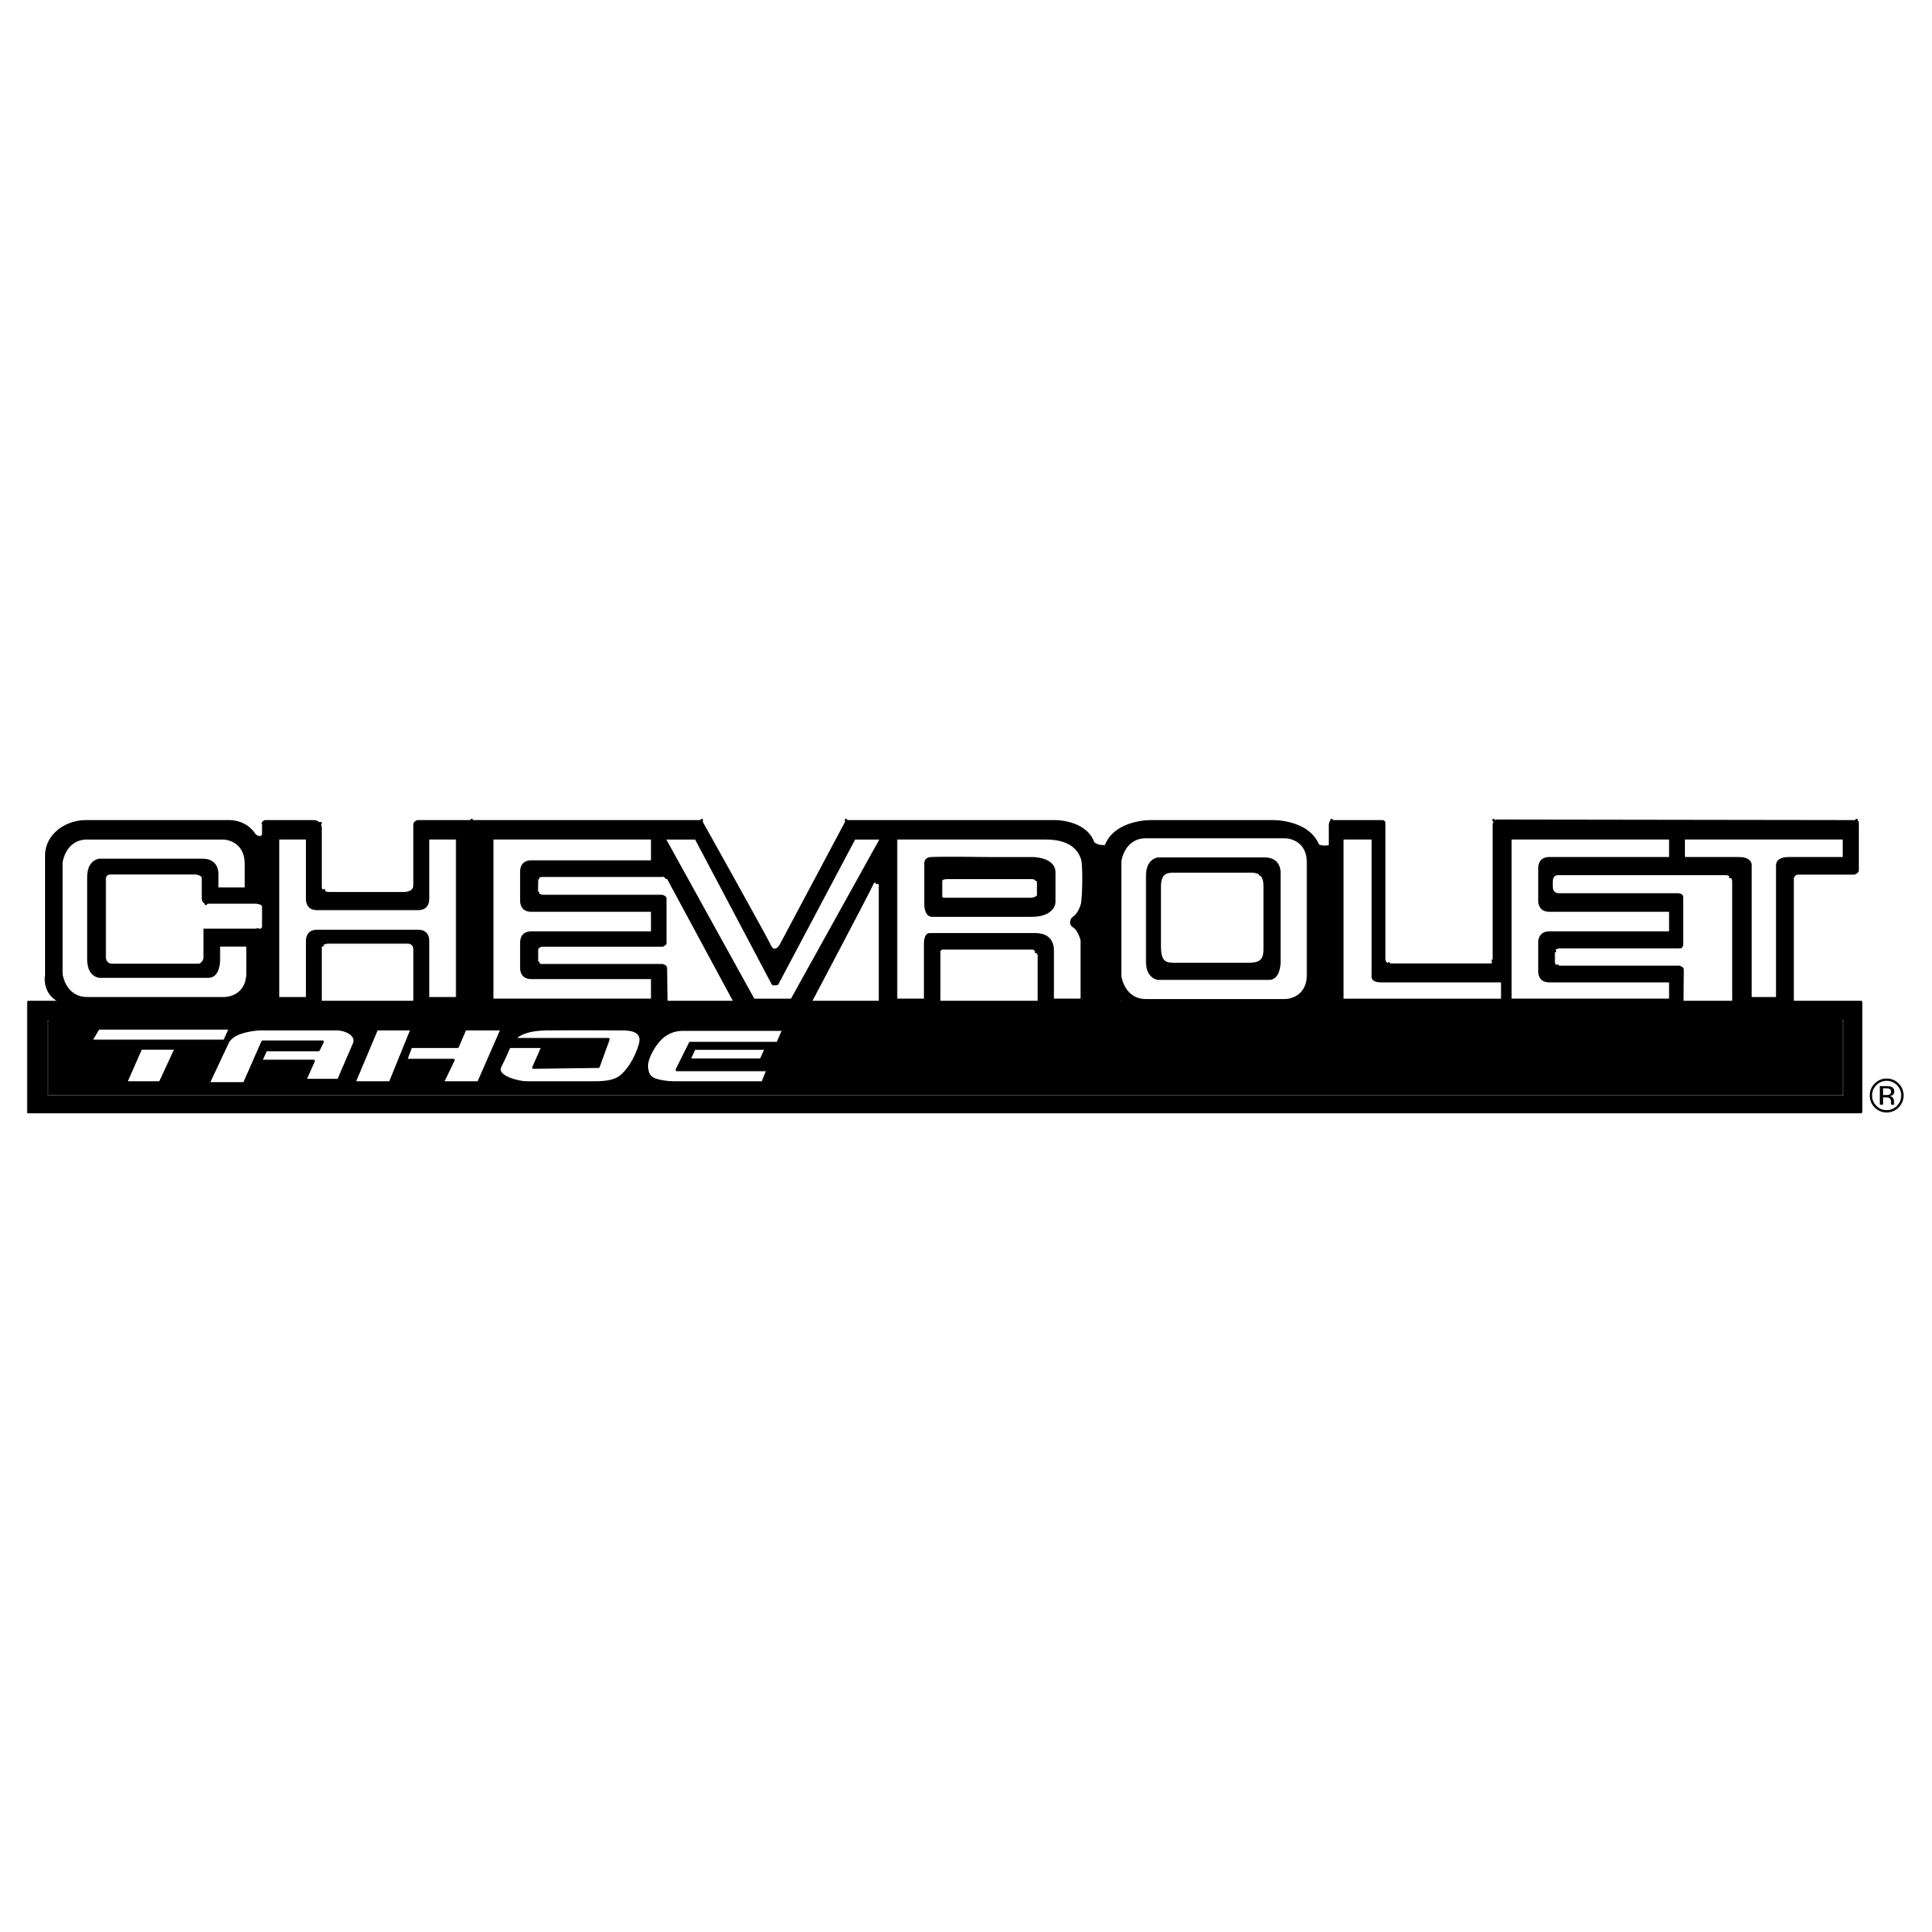 Chevrolet vector logo. Tahoe png transparent svg